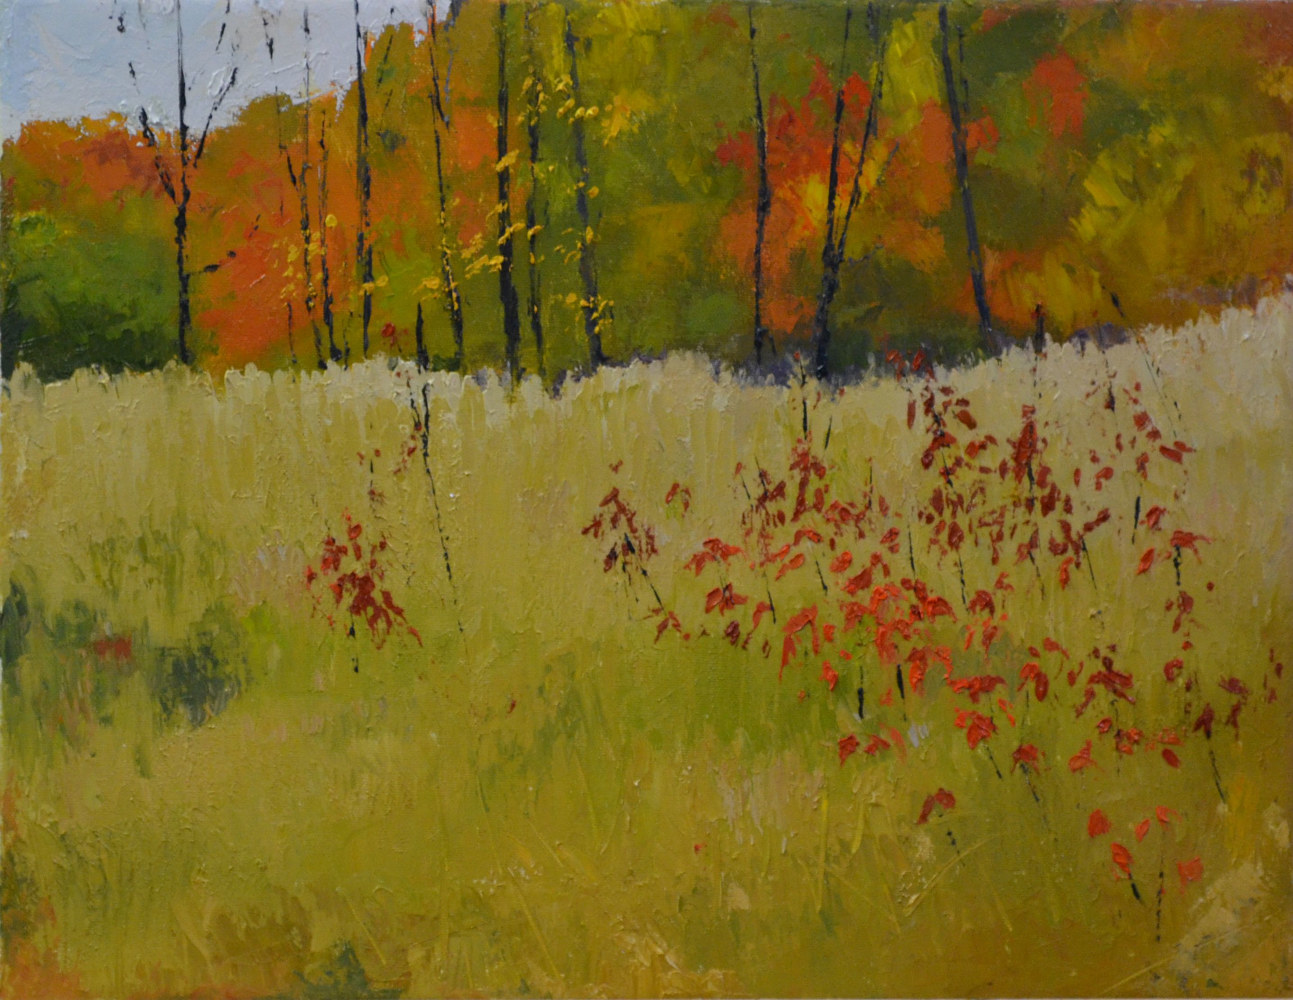 Oil painting Autumn Lyrica, oil on canvas, 14 x 18- 6-0118 by Patricia Savoie